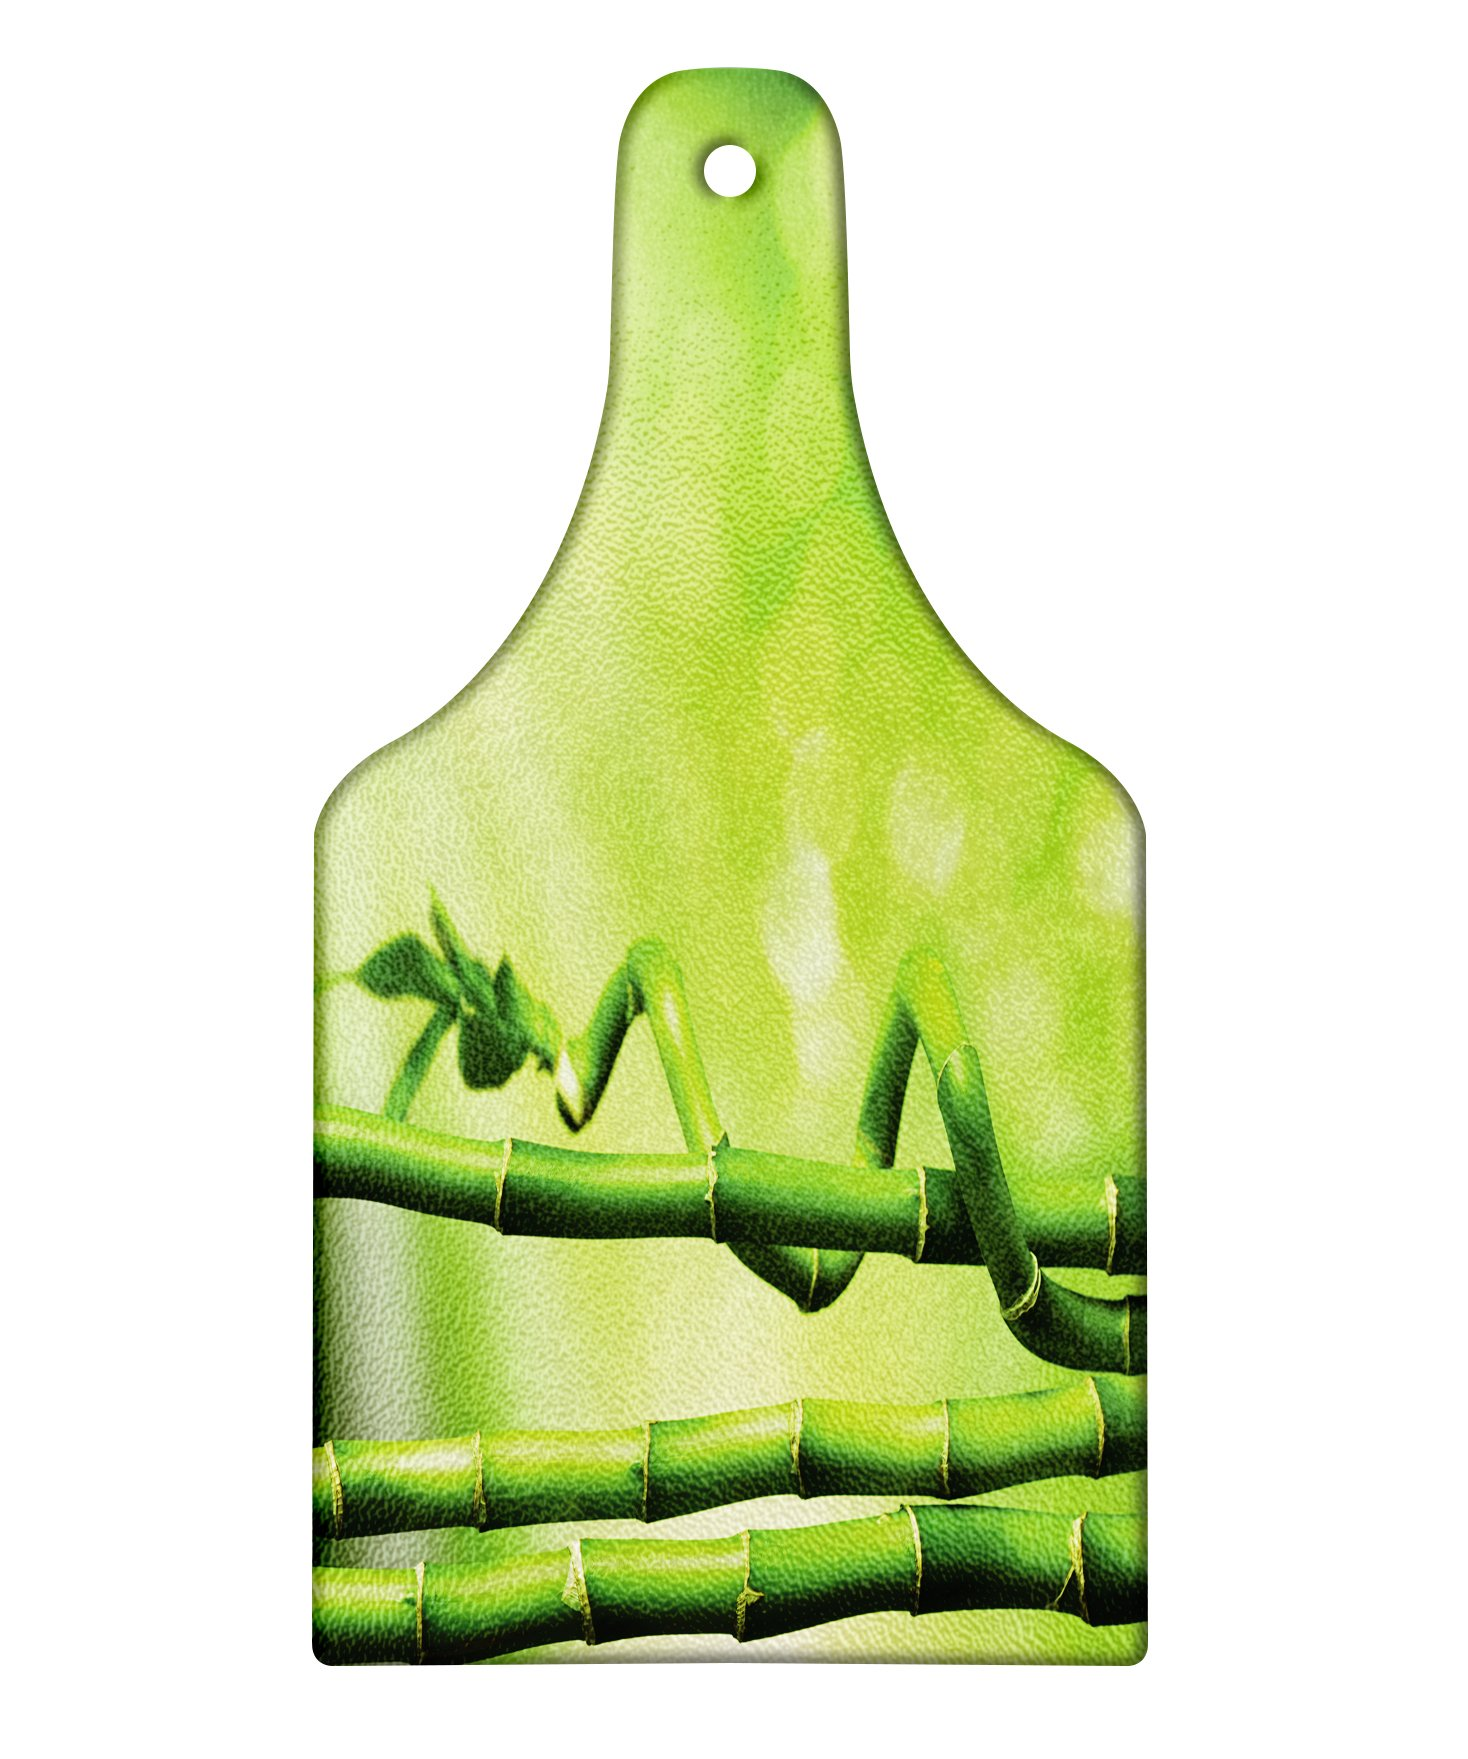 Lunarable Green Cutting Board, Bamboo Stems Nature Ecology Sunbeams Soft Spring Scenic Spa Health Relaxation, Decorative Tempered Glass Cutting and Serving Board, Wine Bottle Shape, Green Pale Green